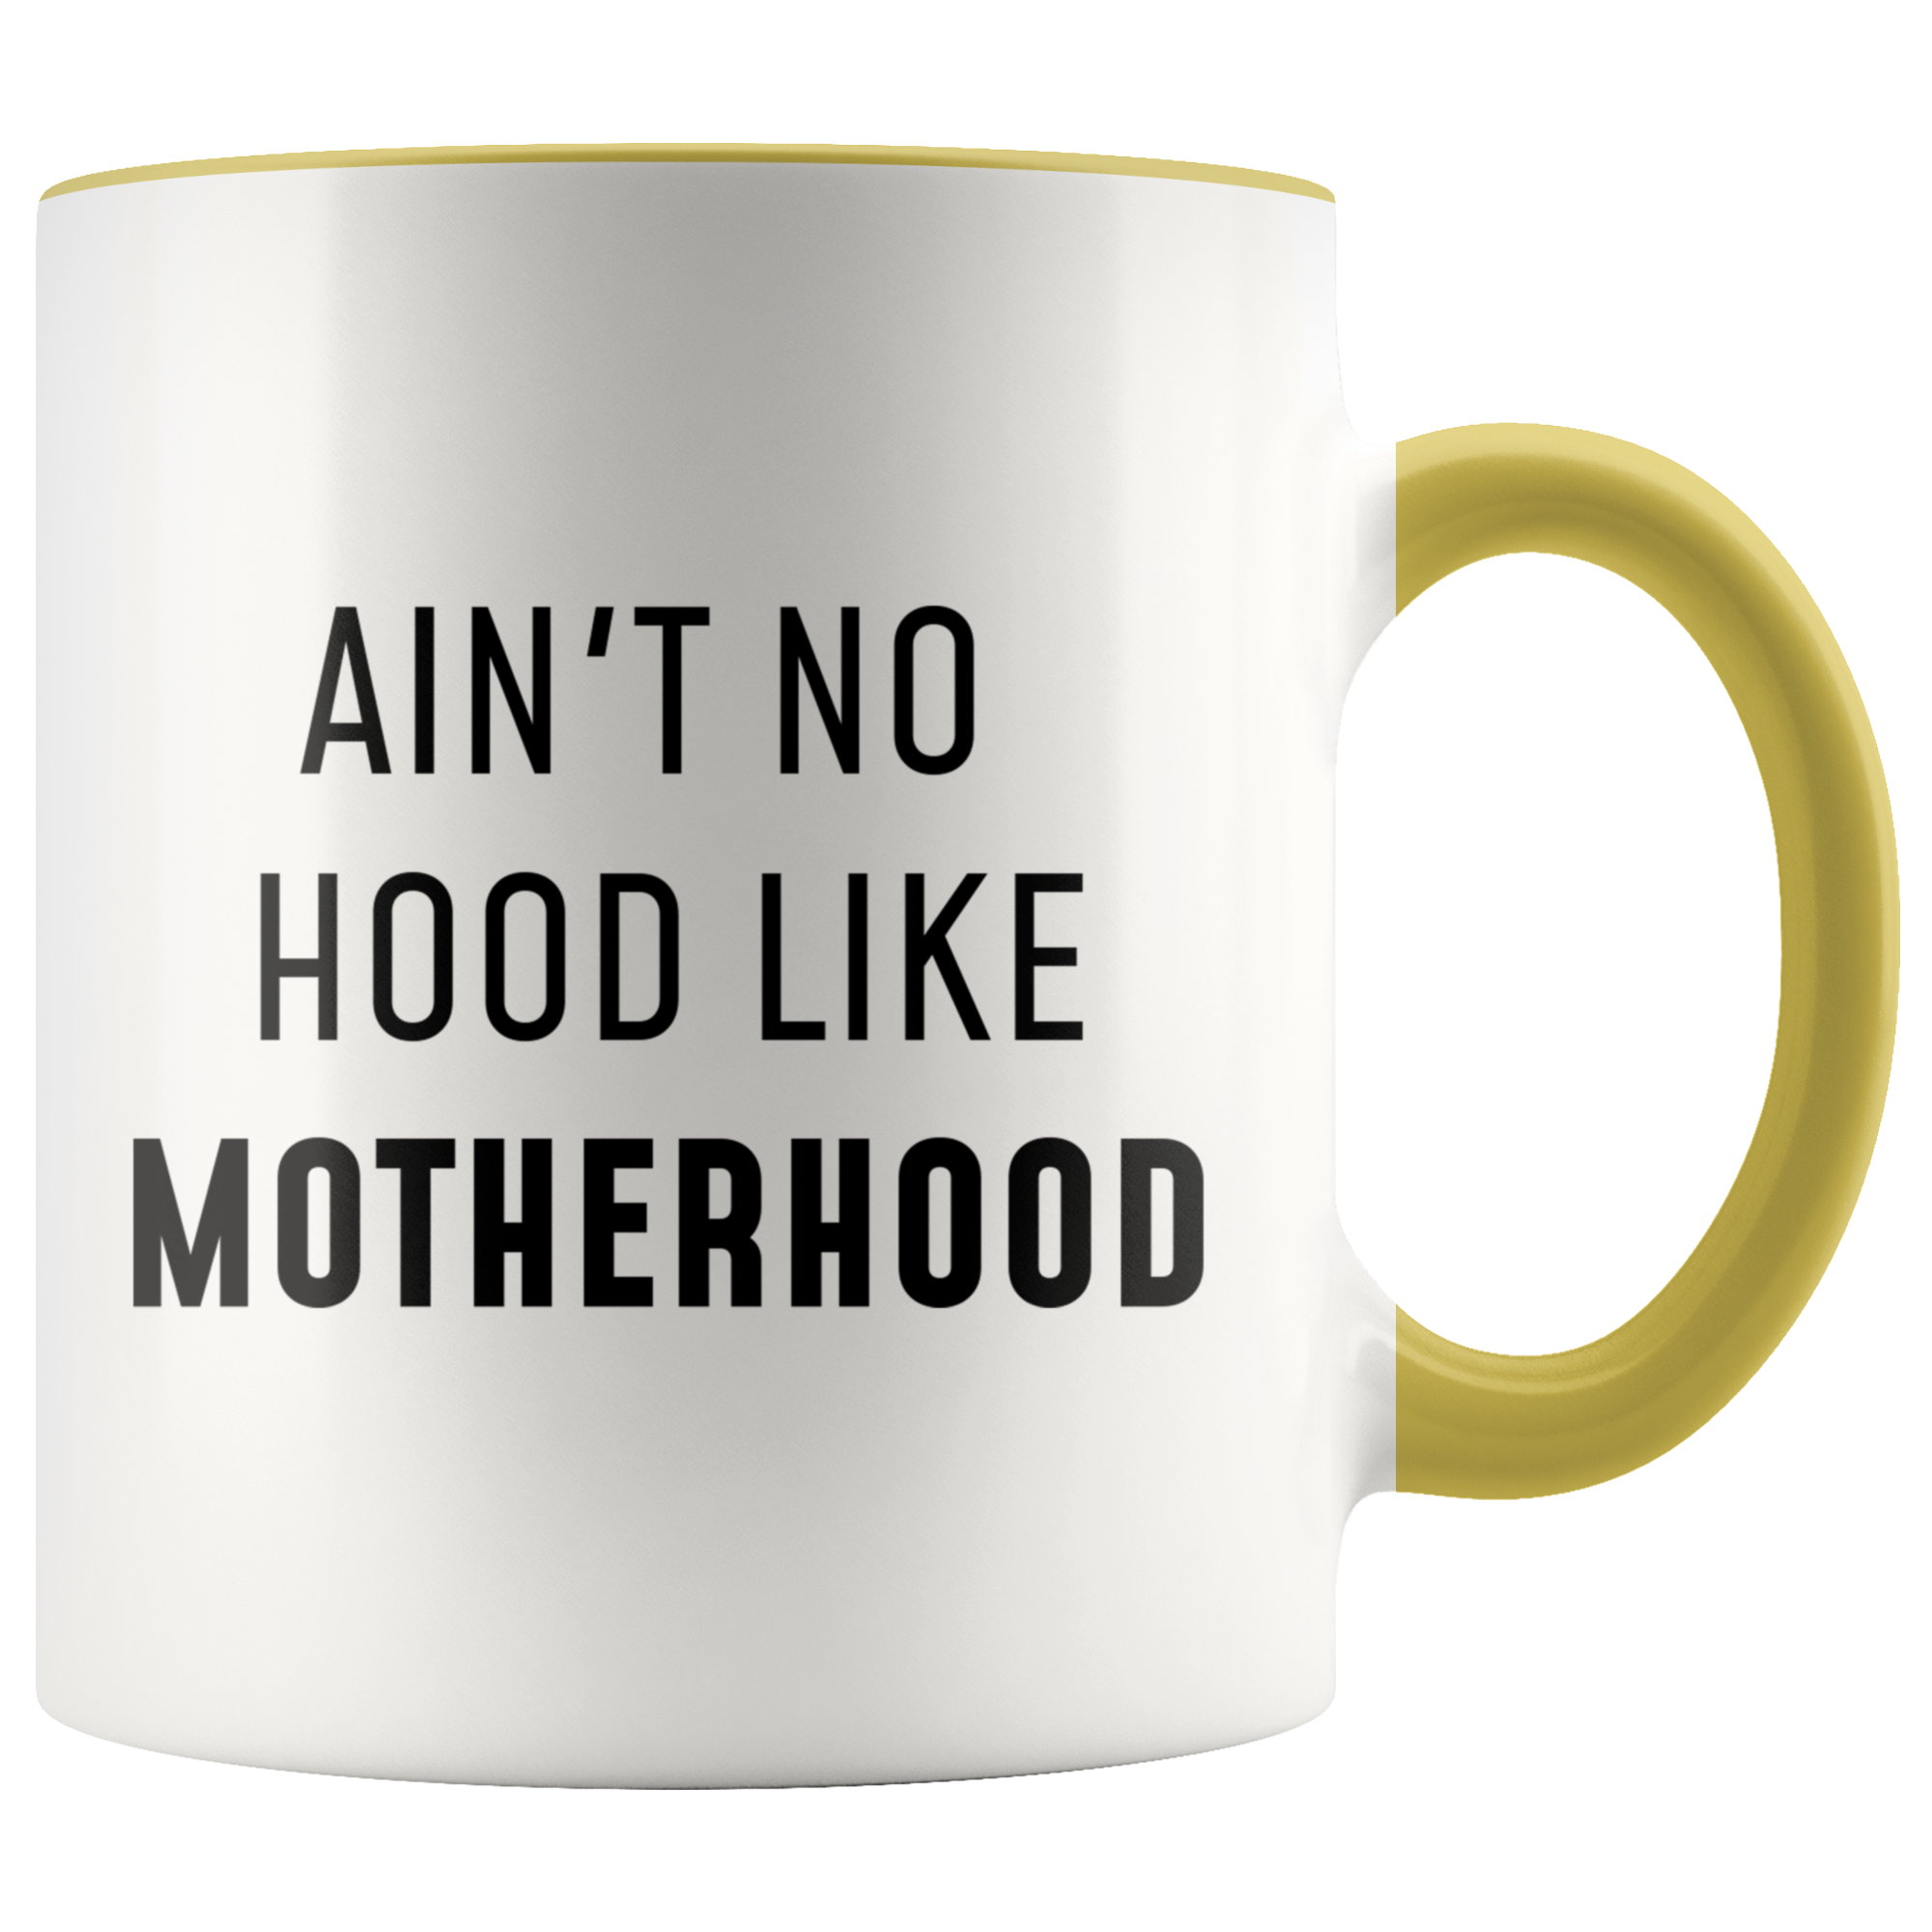 New Mom Gift First Mothers Day From Husband Or Sister Coffee Mug